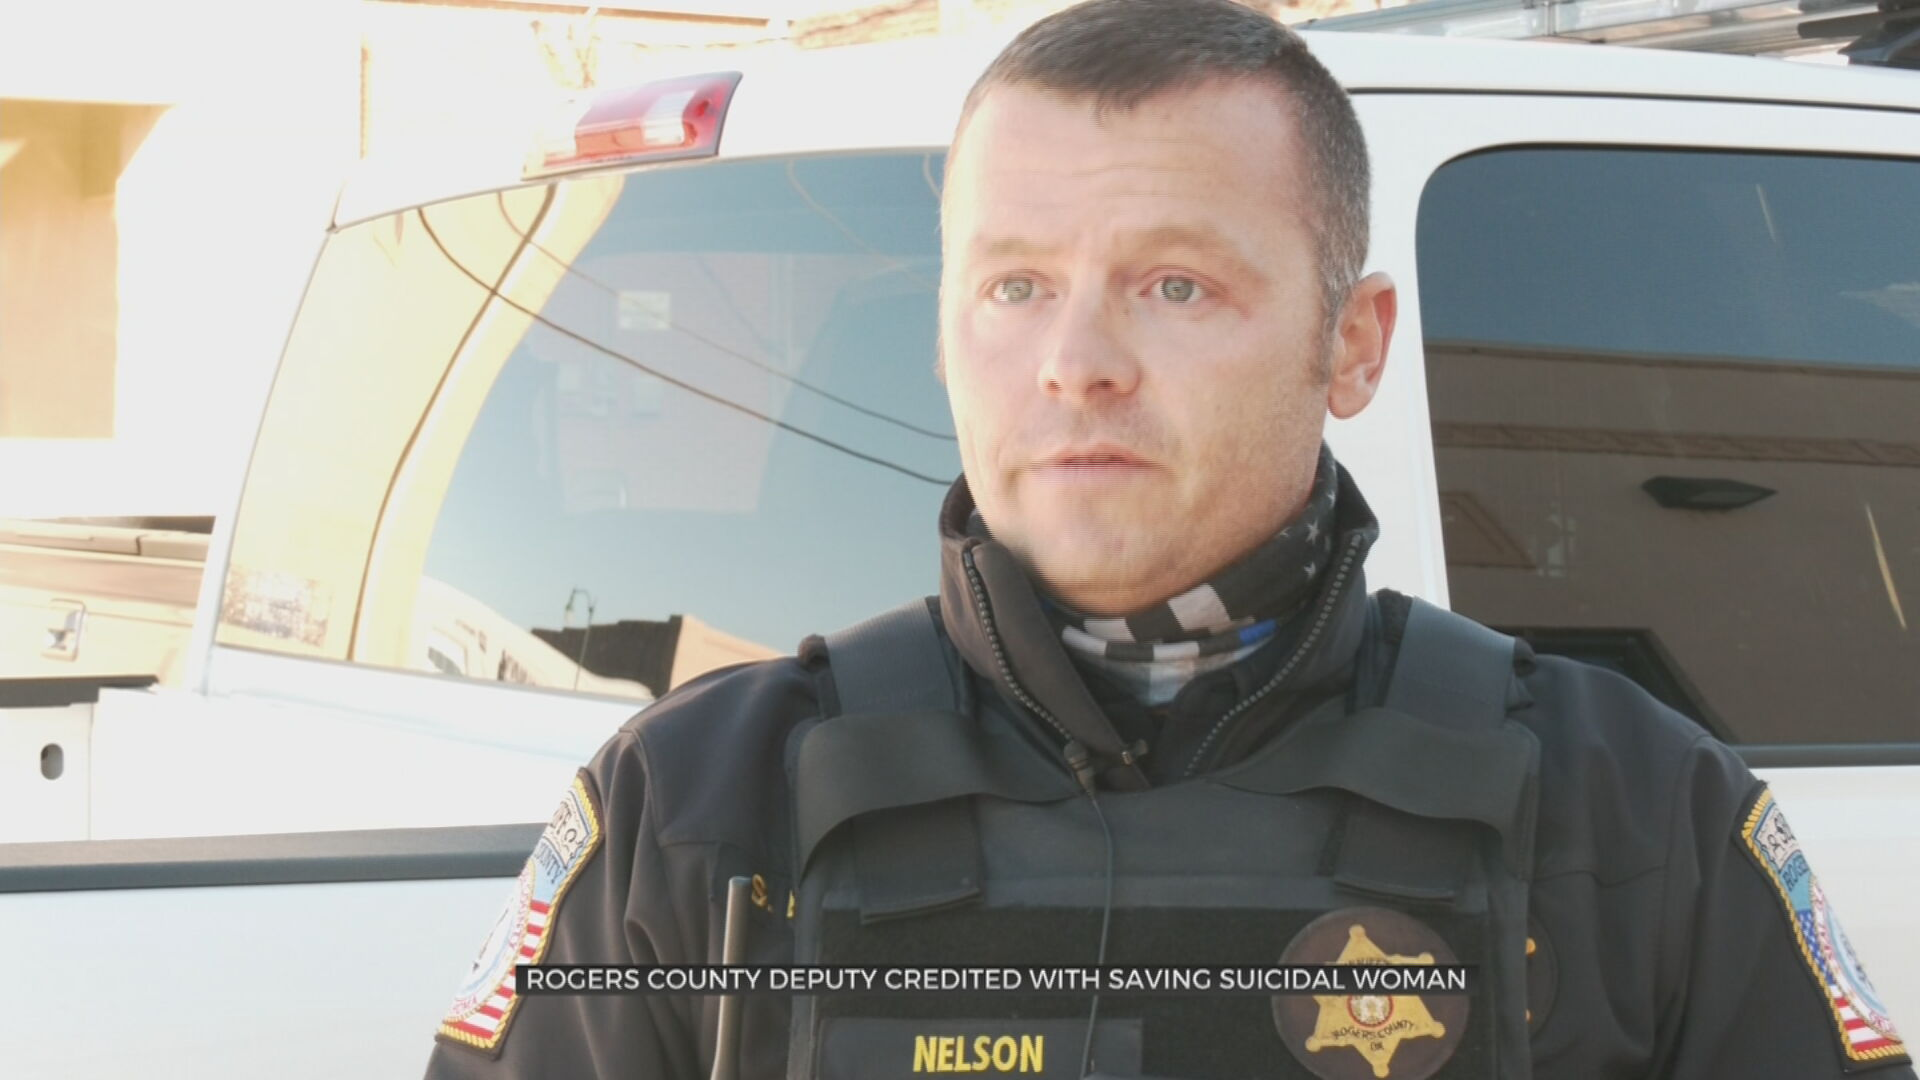 Rogers County Deputy Credited With Saving Suicidal Woman